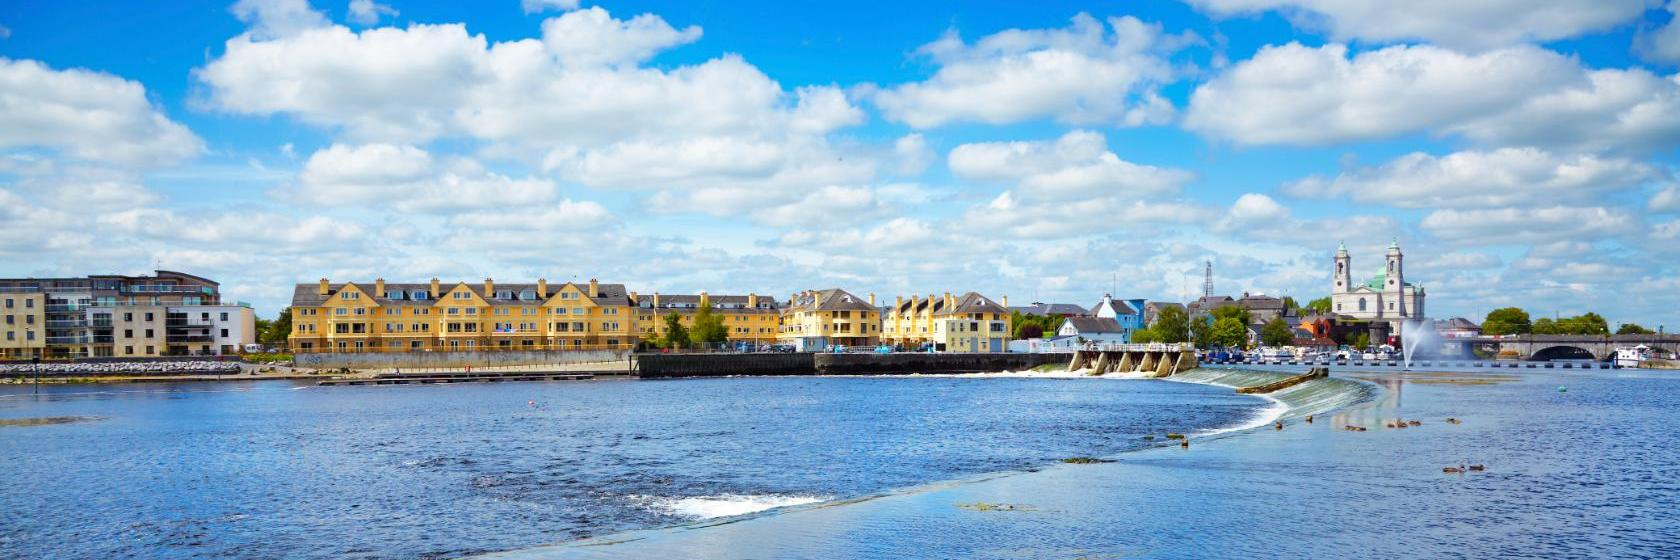 Hotels in Athlone. Book your hotel now! - uselesspenguin.co.uk